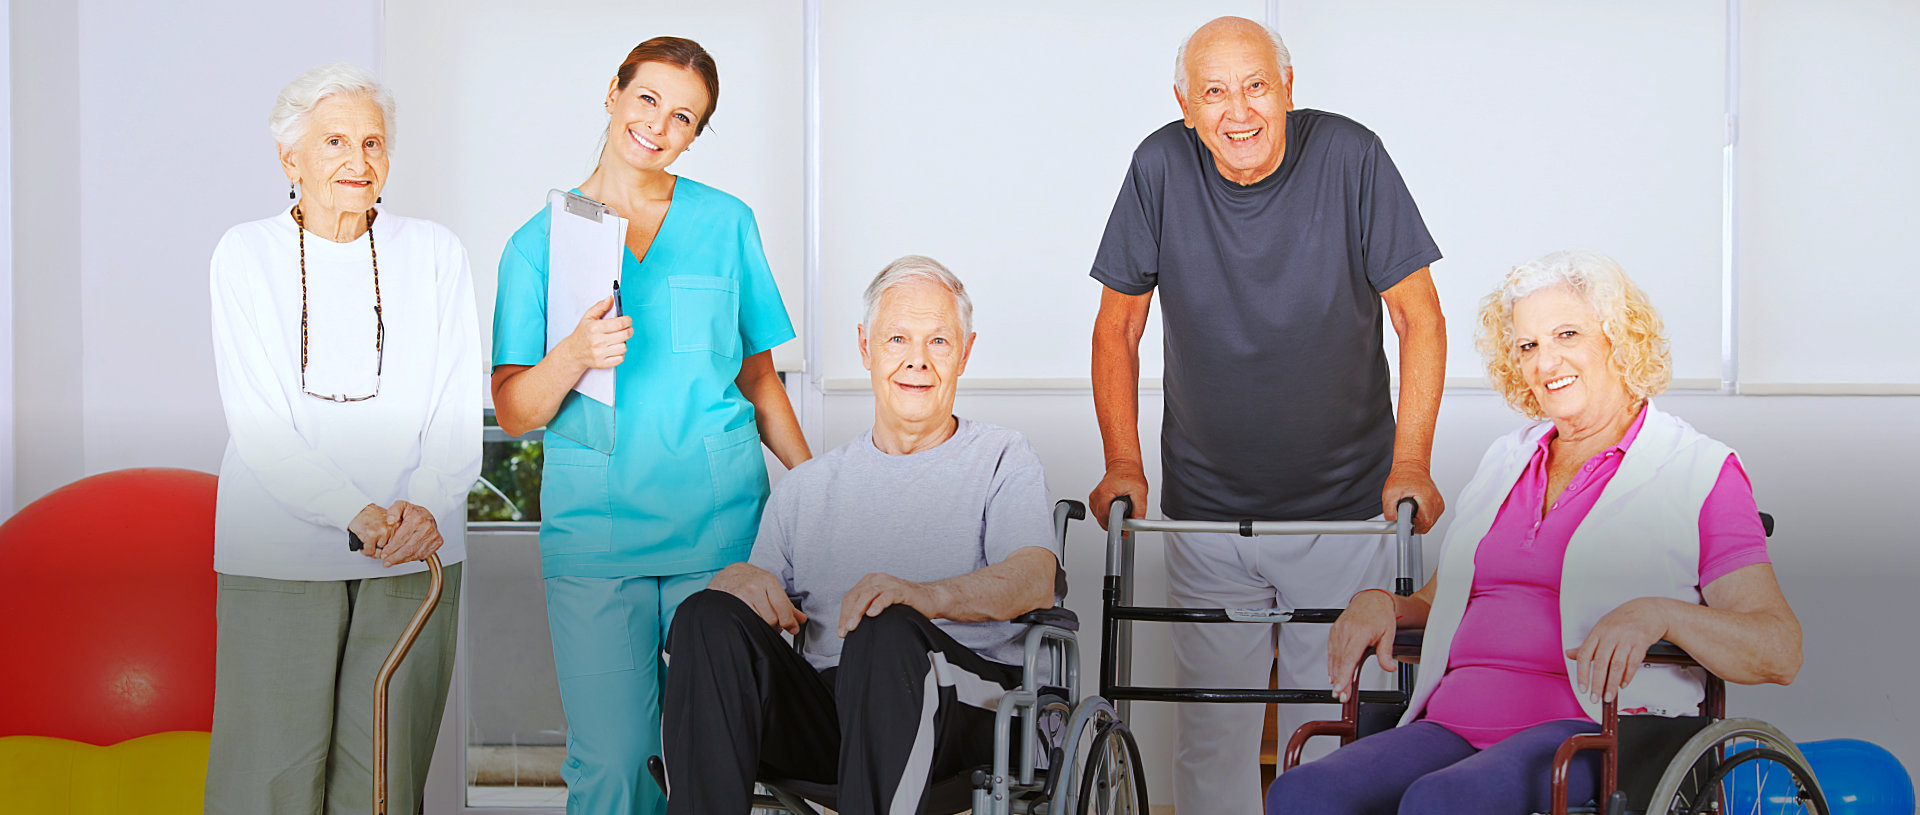 caregiver and group of elderly smiling